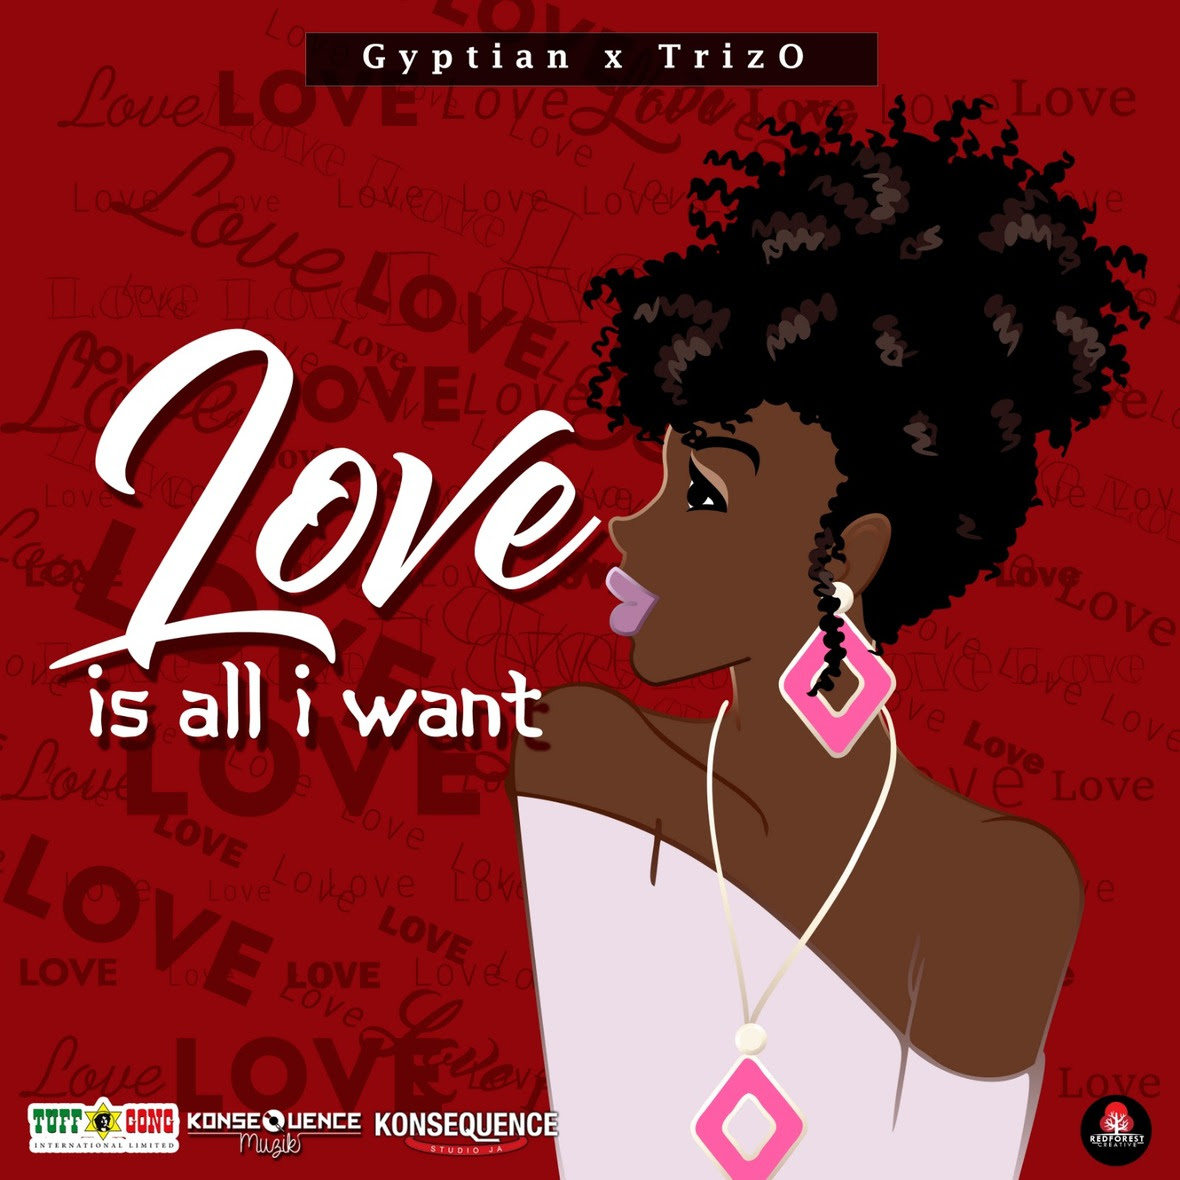 Gyptian x Trizo - Love Is All I Want